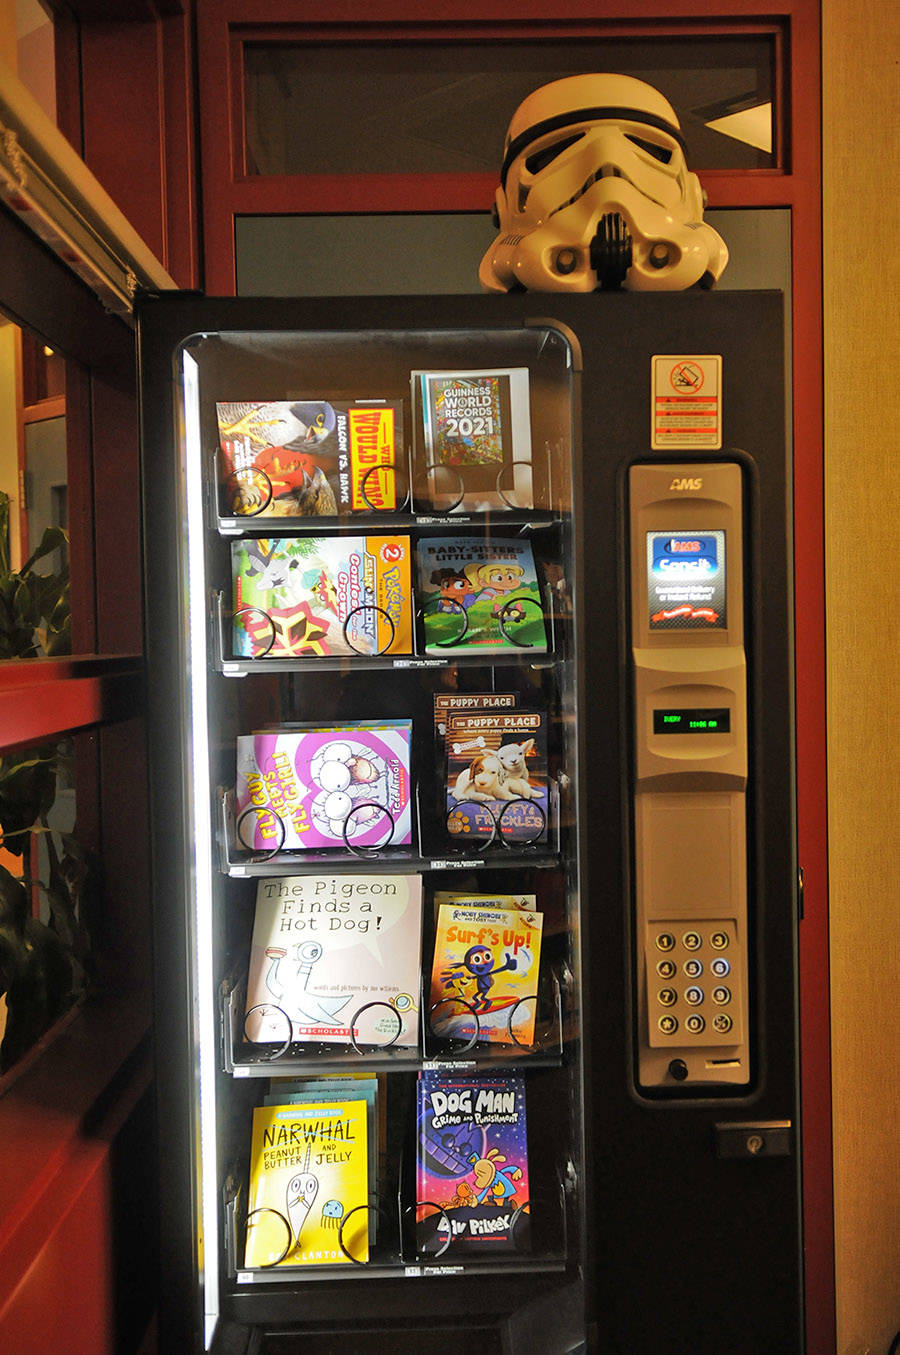 Unsworth elementary recently got this book vending machine which is located in the school's library. (Jenna Hauck/ Chilliwack Progress)